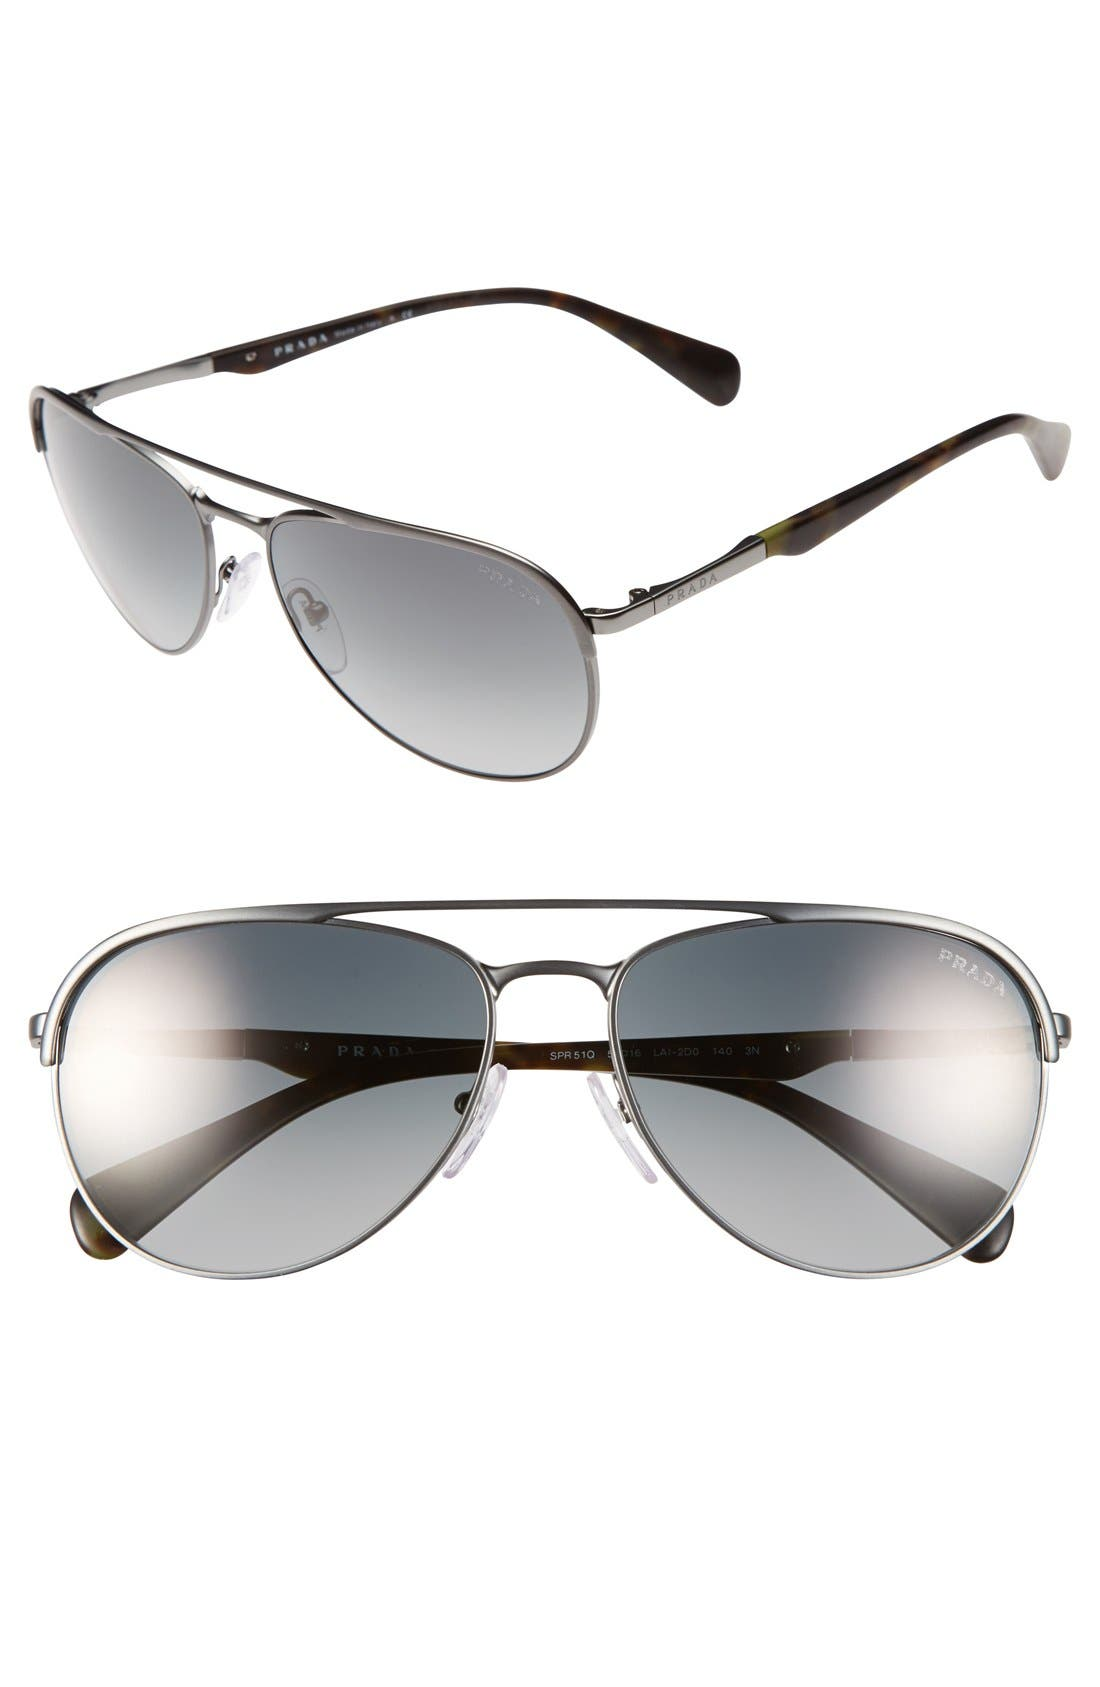 Alternate Image 1 Selected - Prada 59mm Aviator Sunglasses